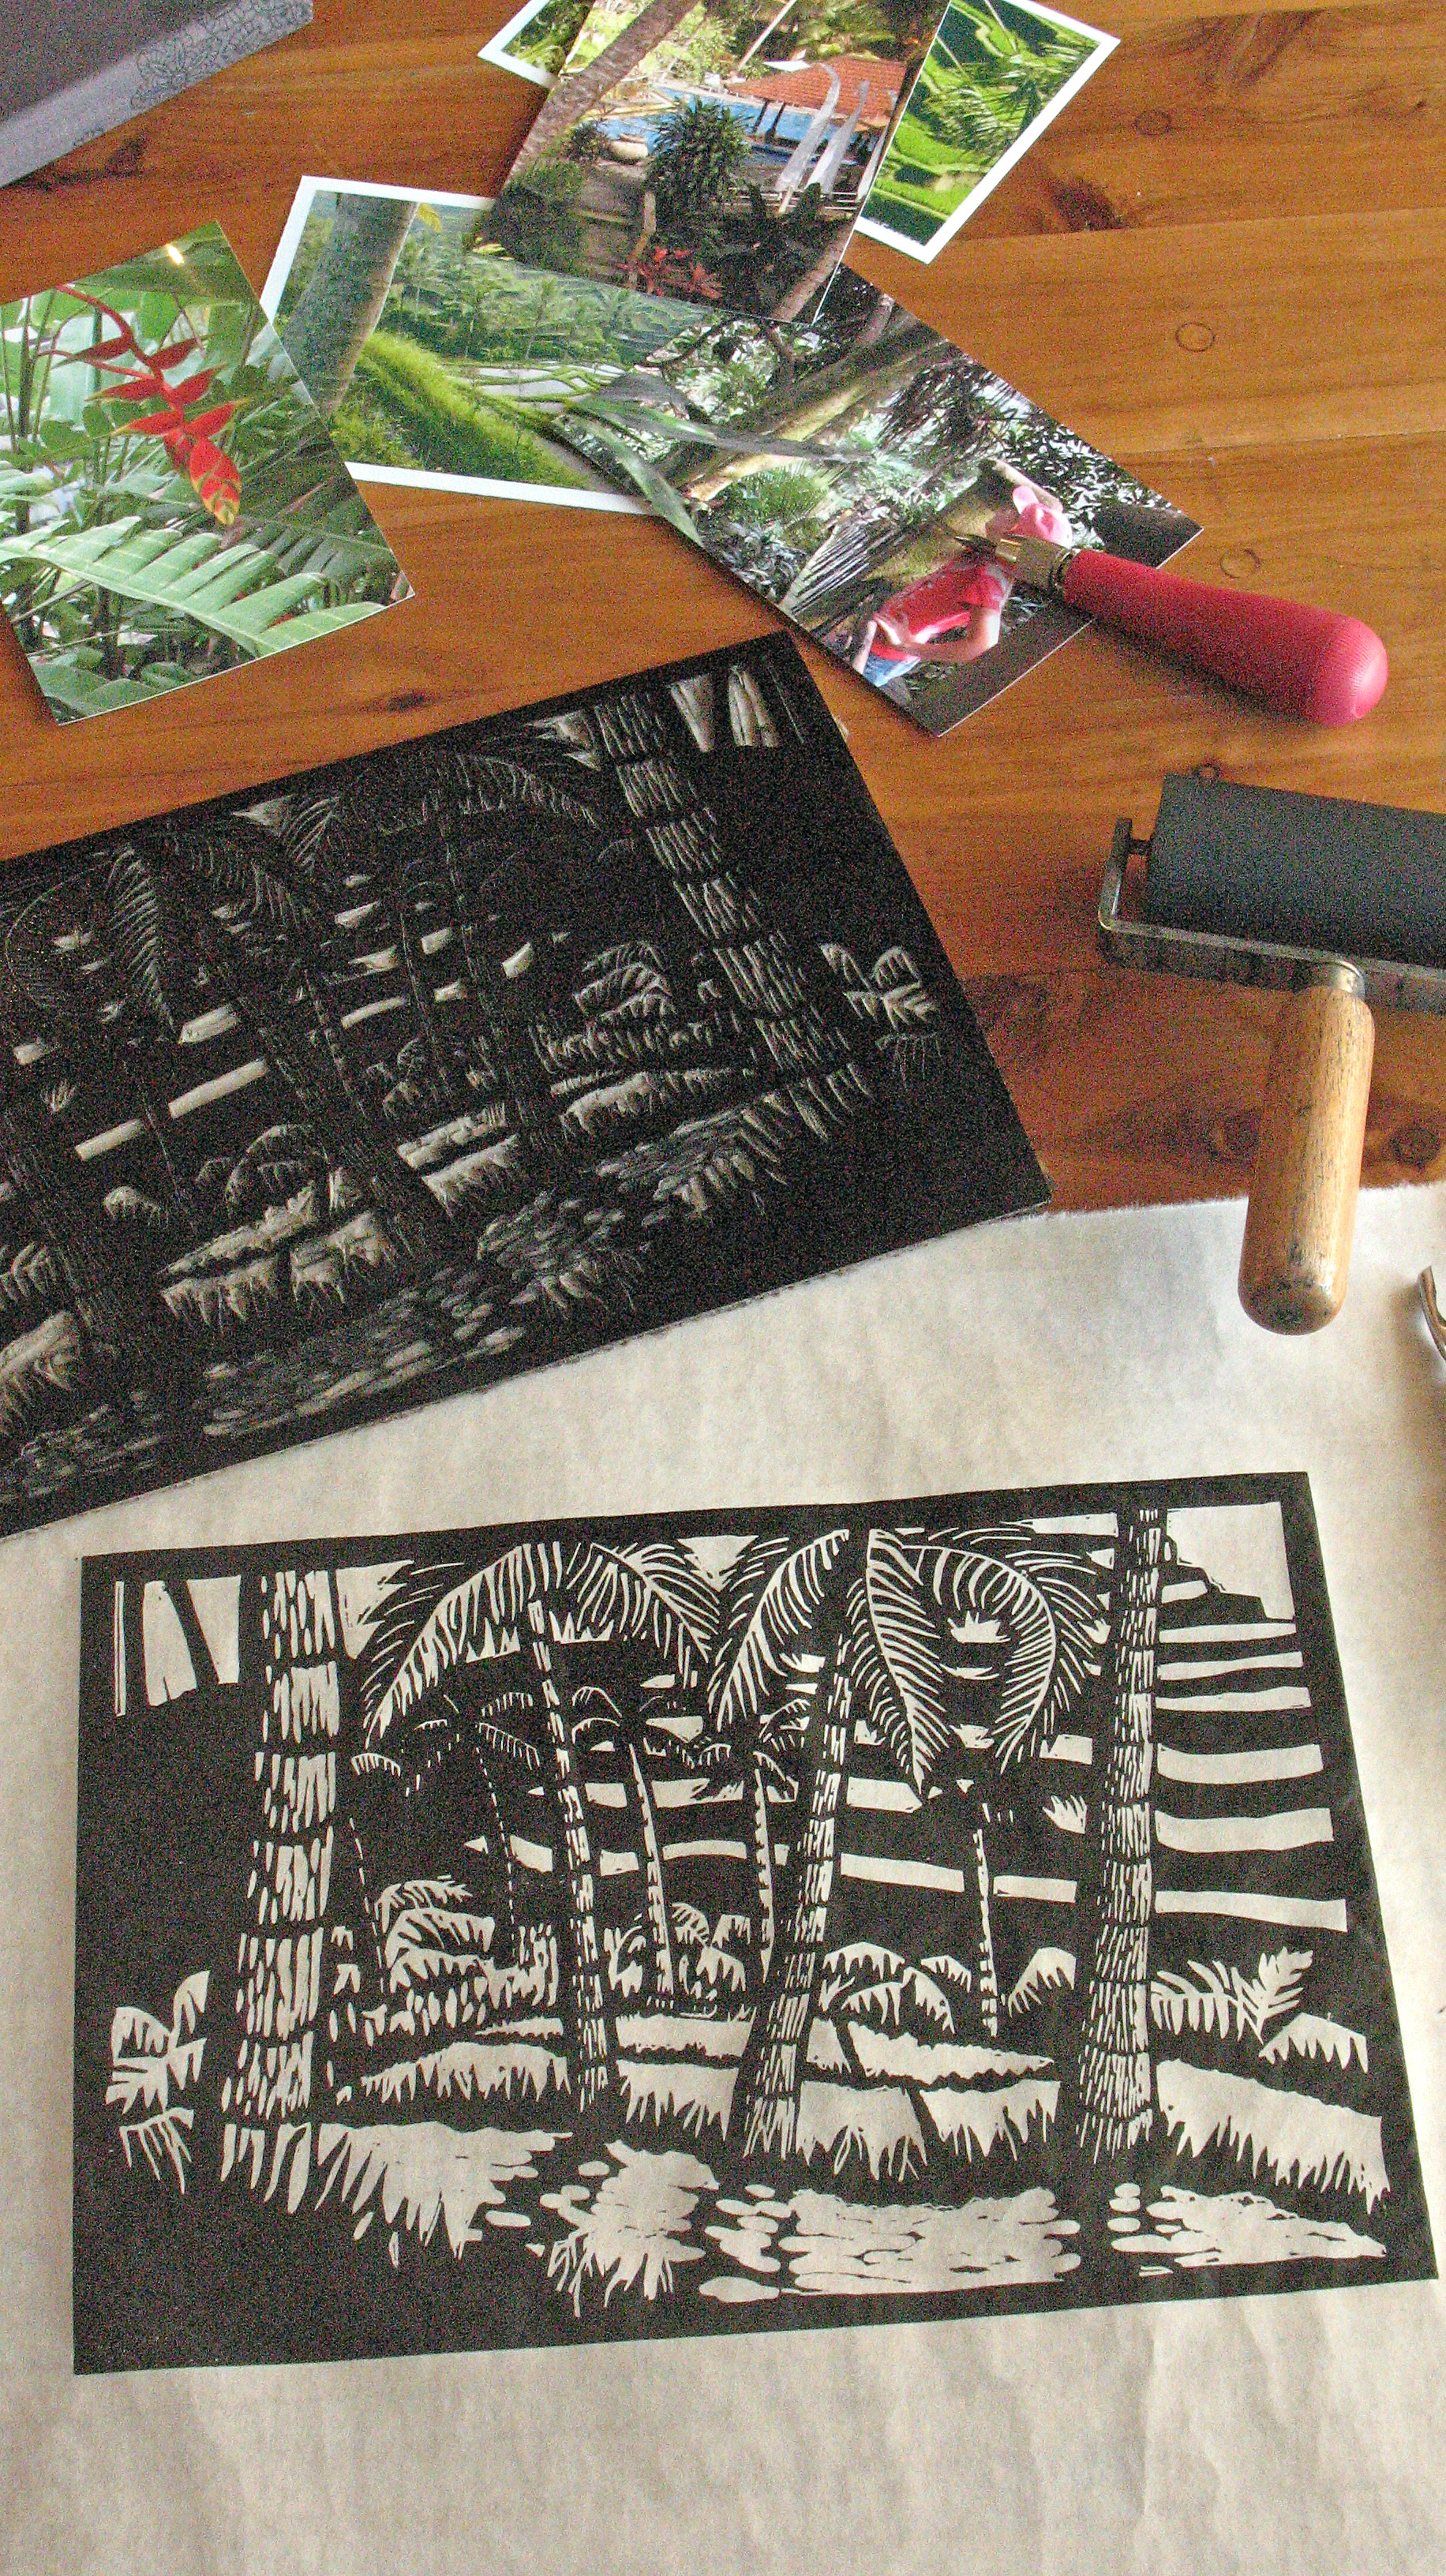 Linocut of Ubud Landscape with Lino block